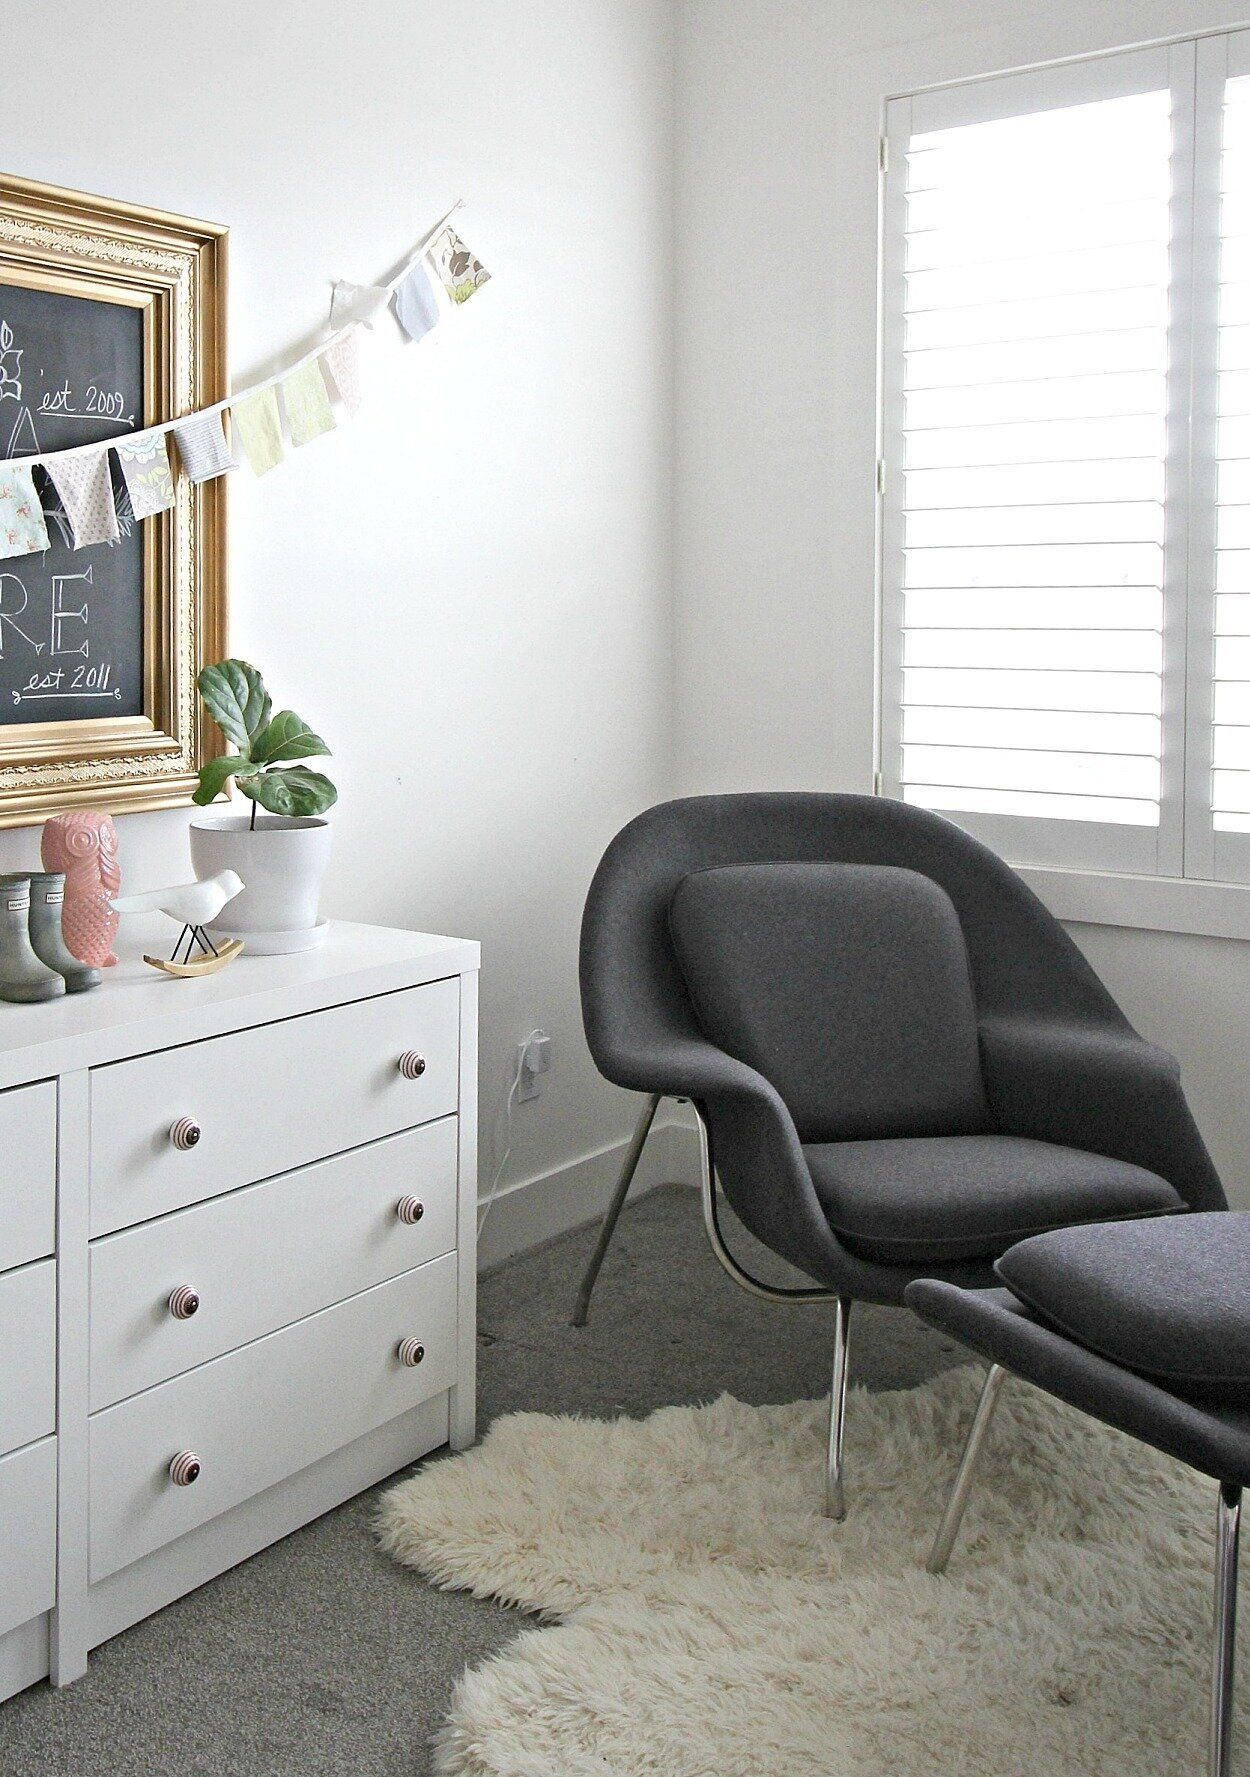 6 Amazing Decor Ideas for Your Rental Apartment in 2020